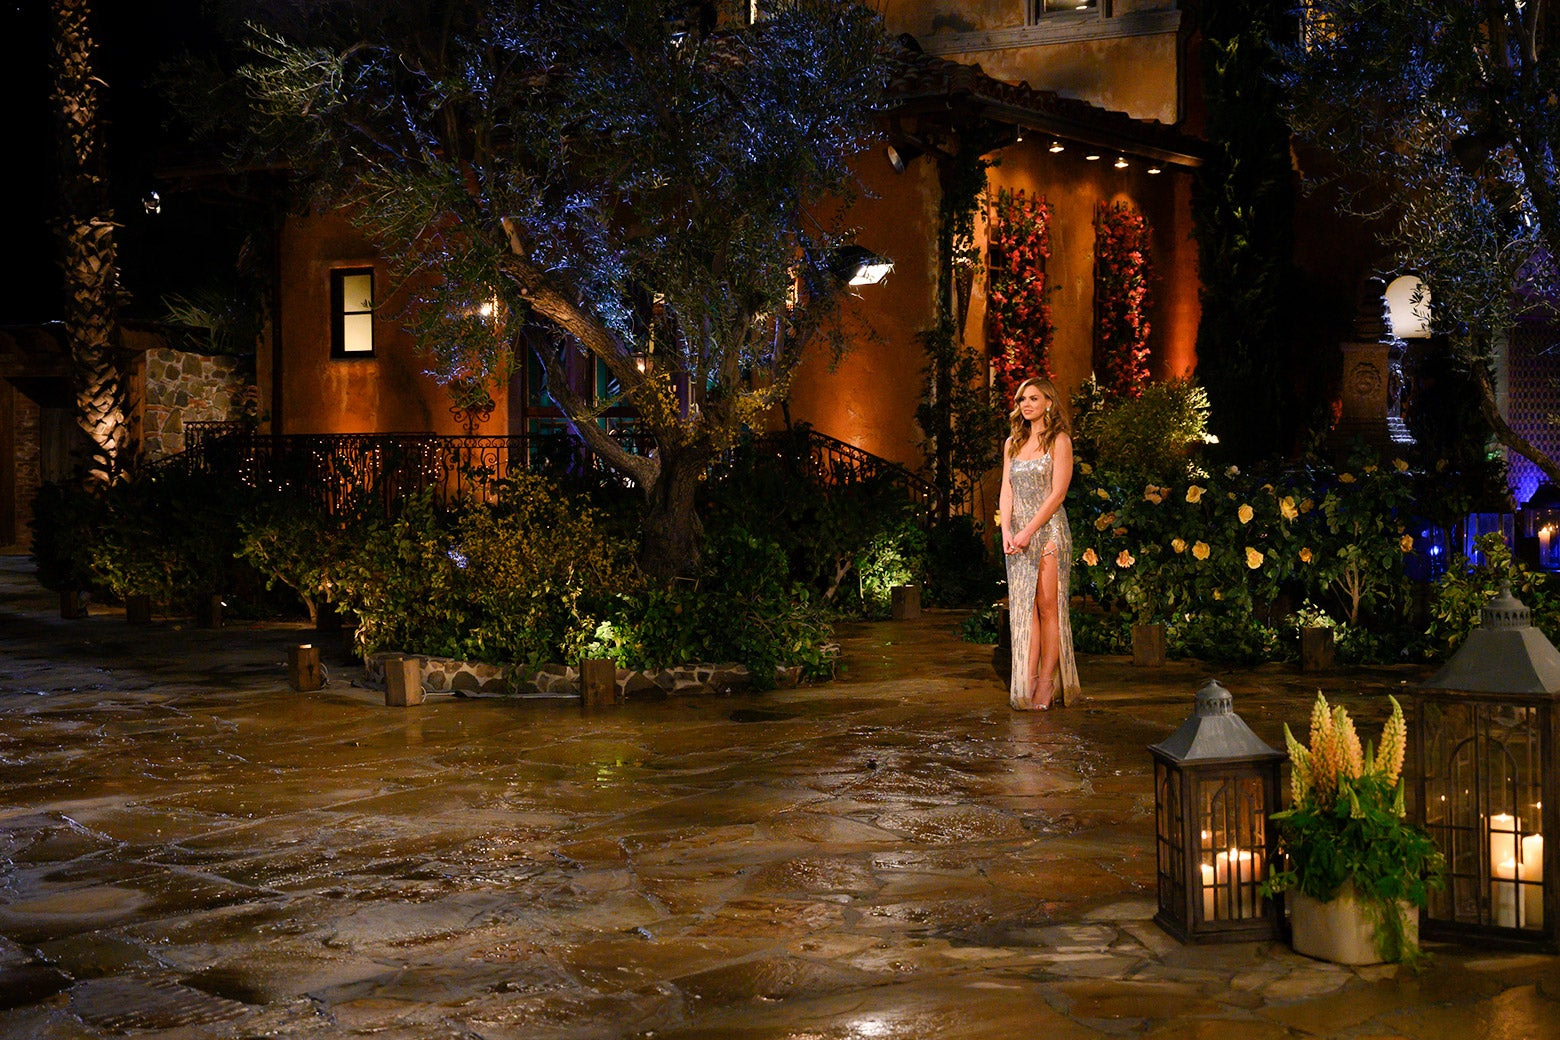 Hannah Brown stands outside the mansion on The Bachelorette.